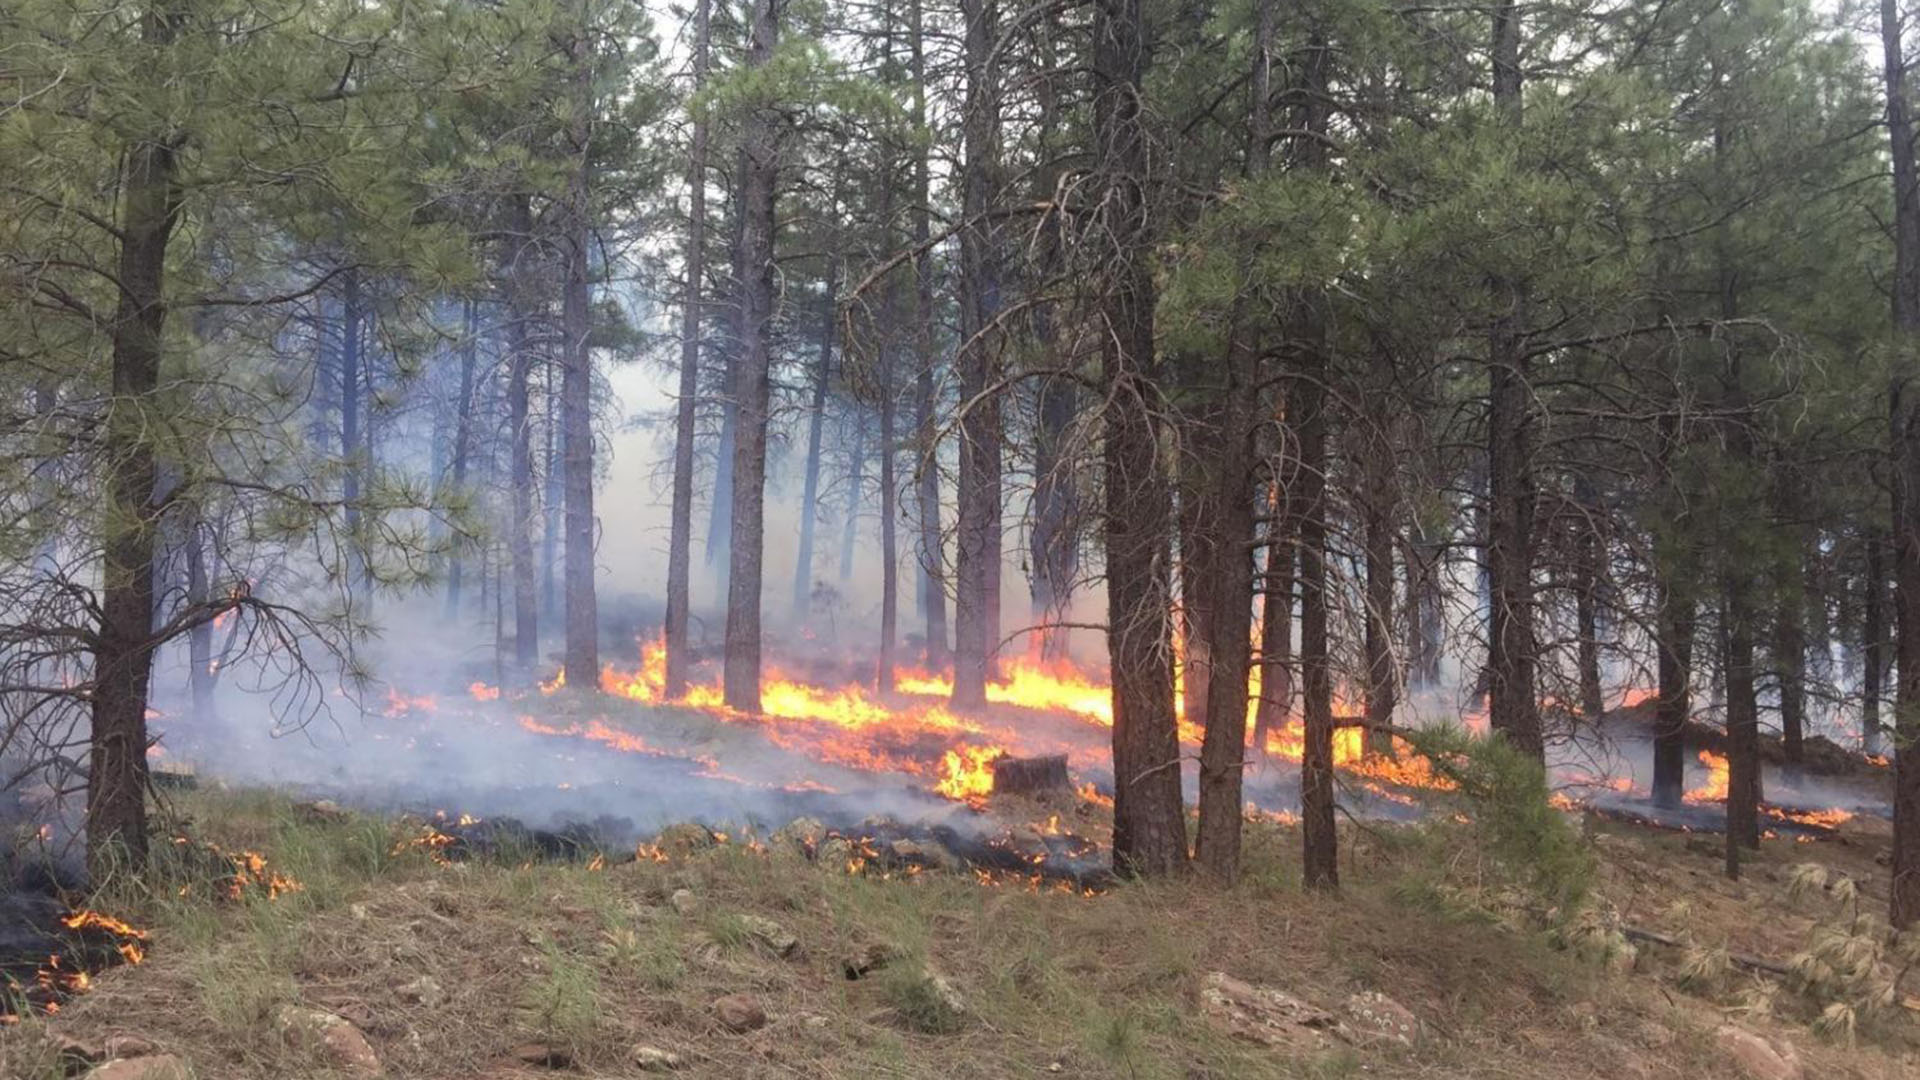 The U.S. Forest Service allowed fire to burn more than 73,500 acres in northern Arizona last year.